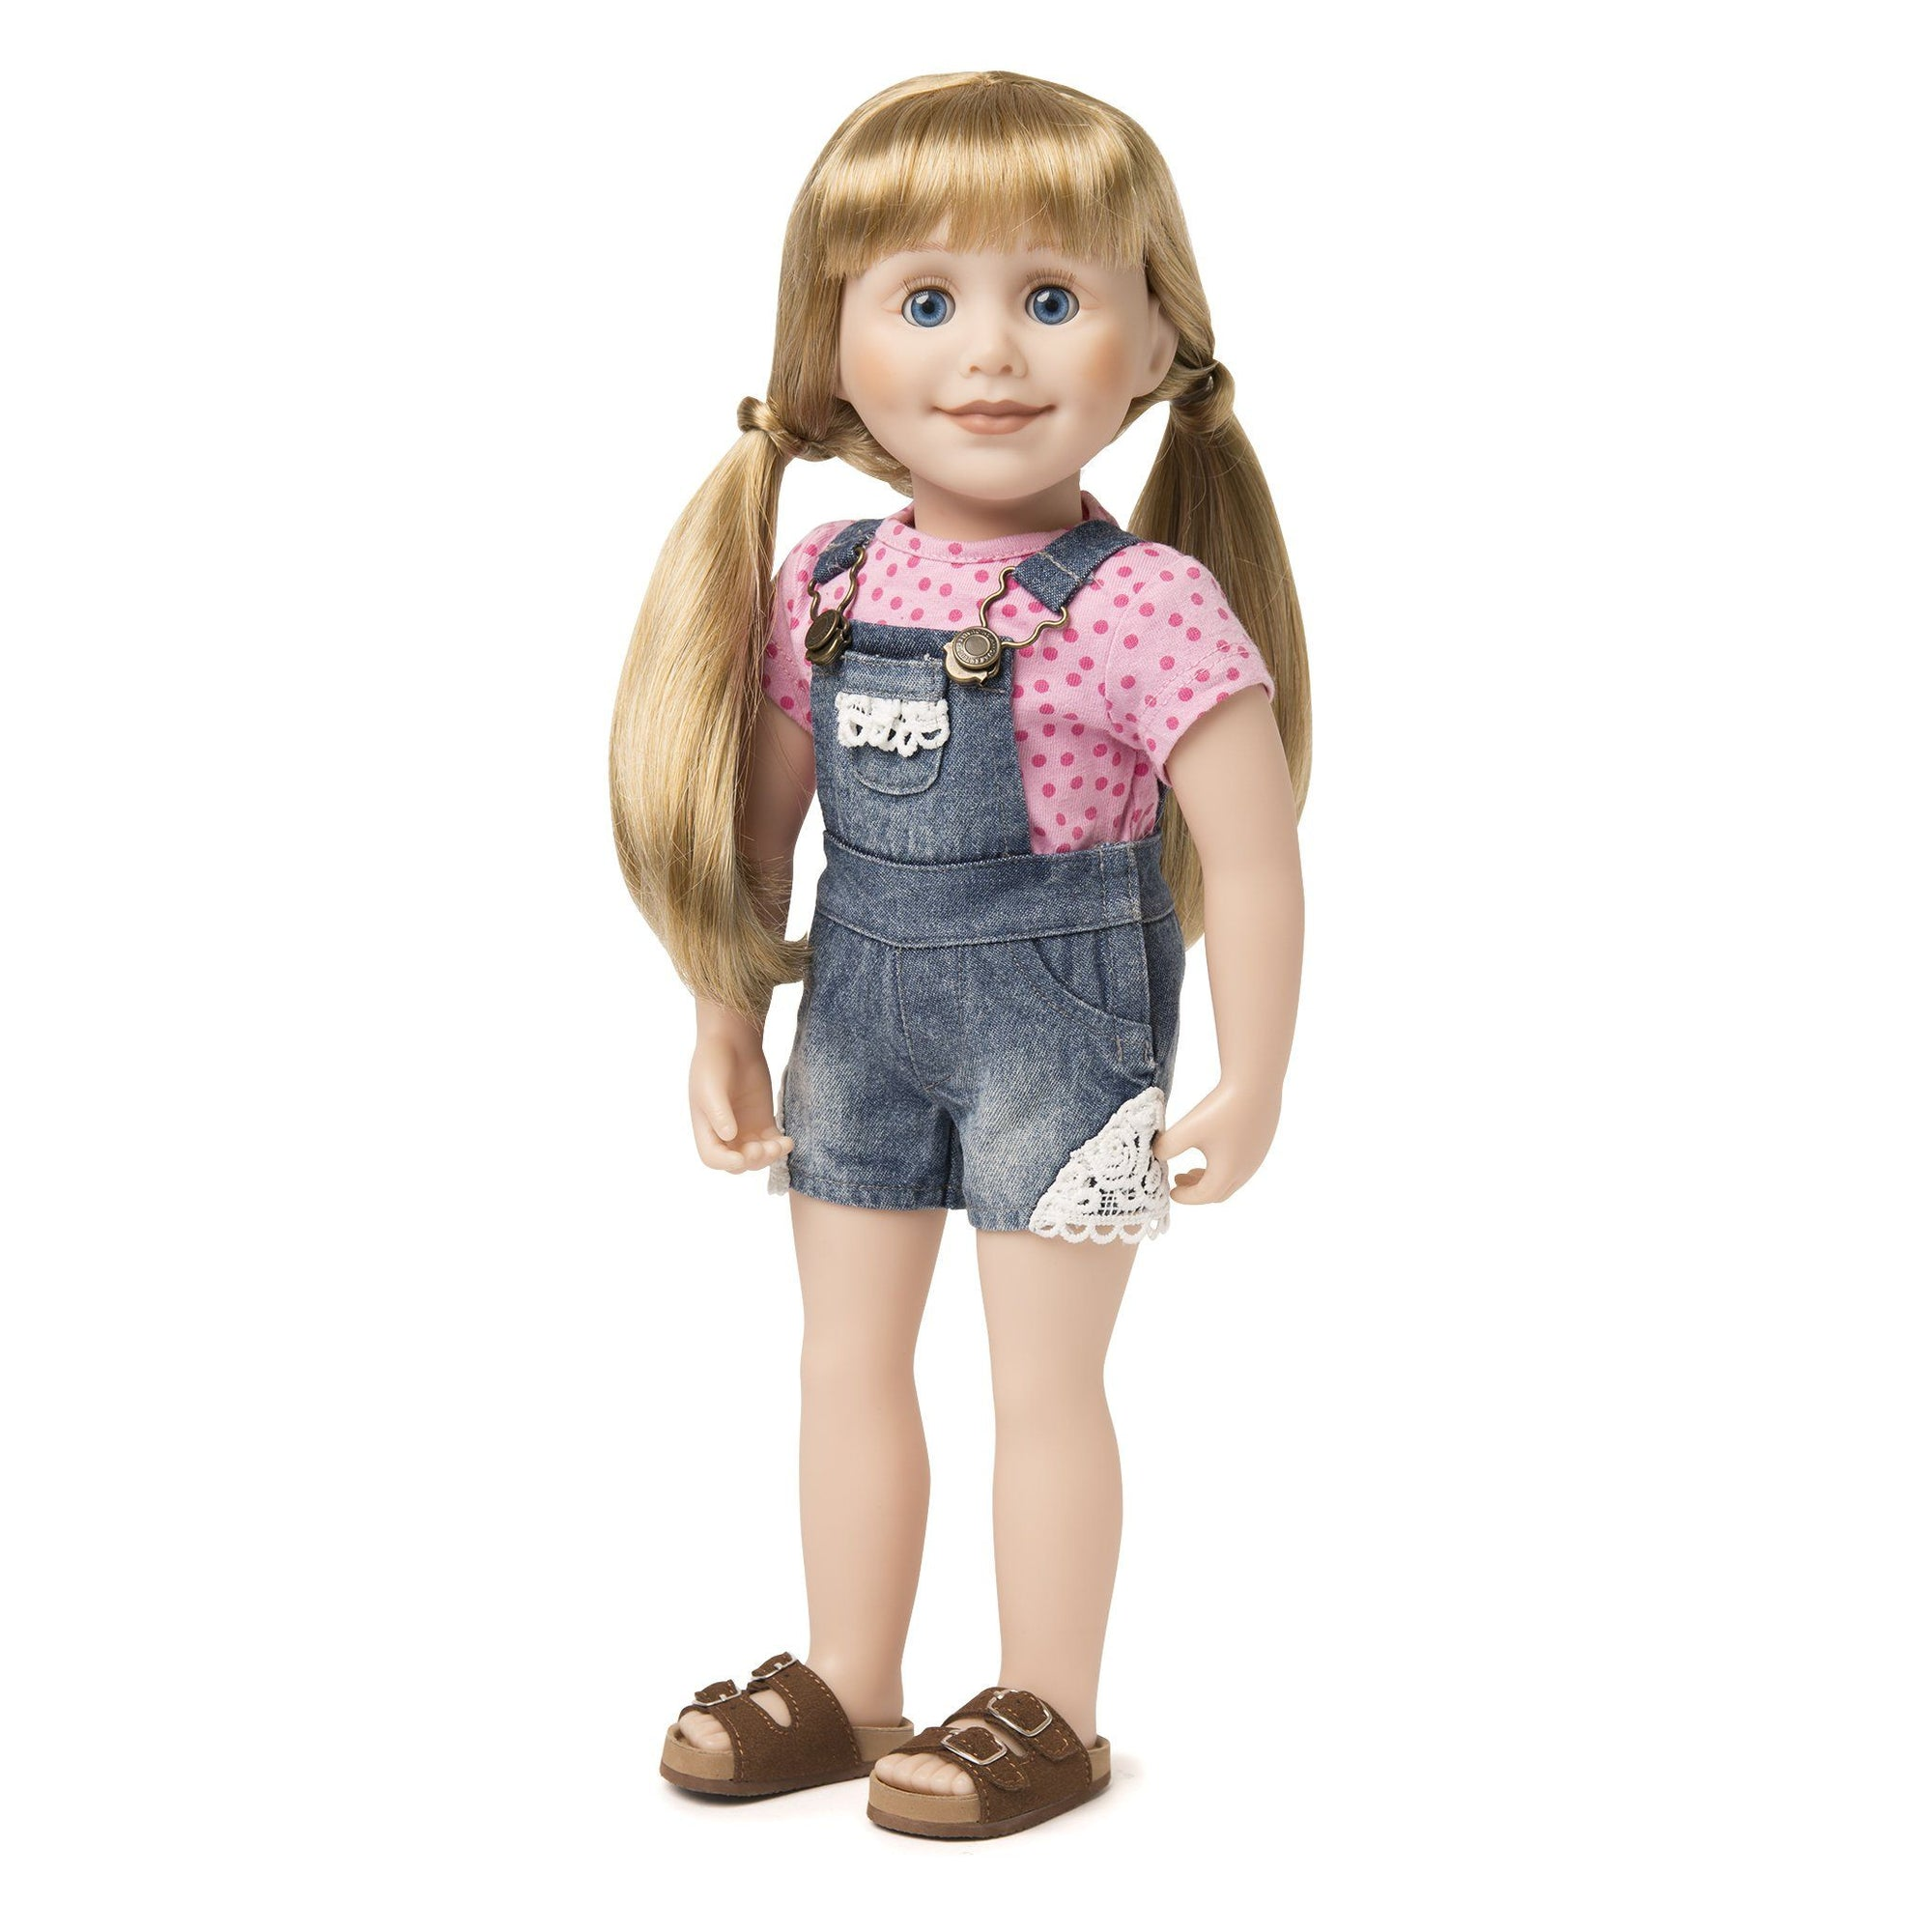 Summer denim overall shorts with lace trim and pink polka dot t-shirt fits all 18 inch dolls